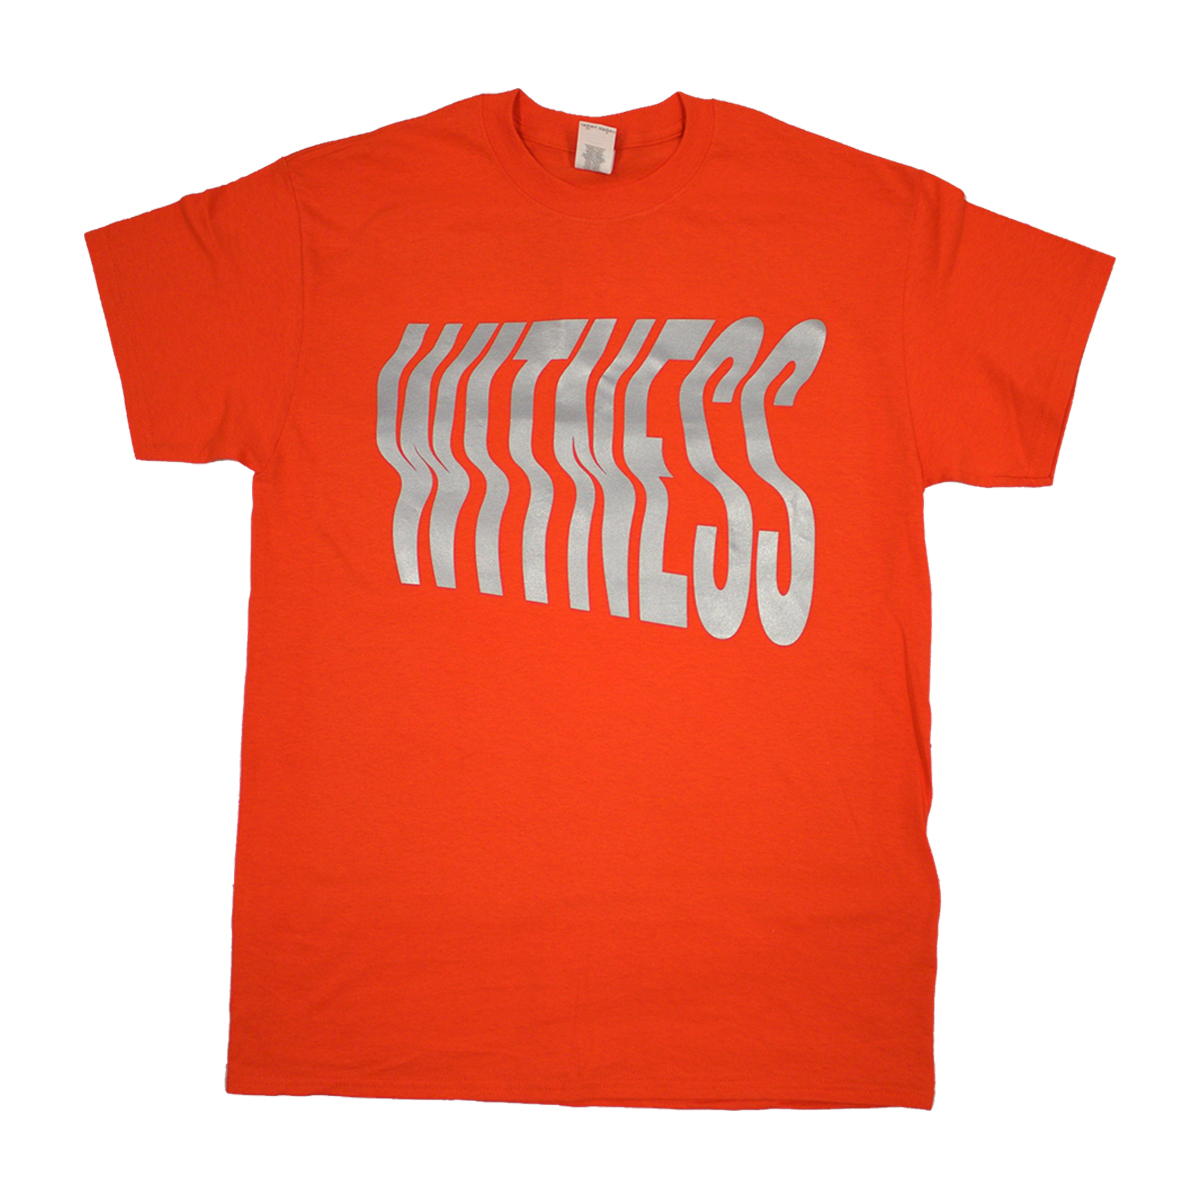 Reflective Witness Orange T-Shirt